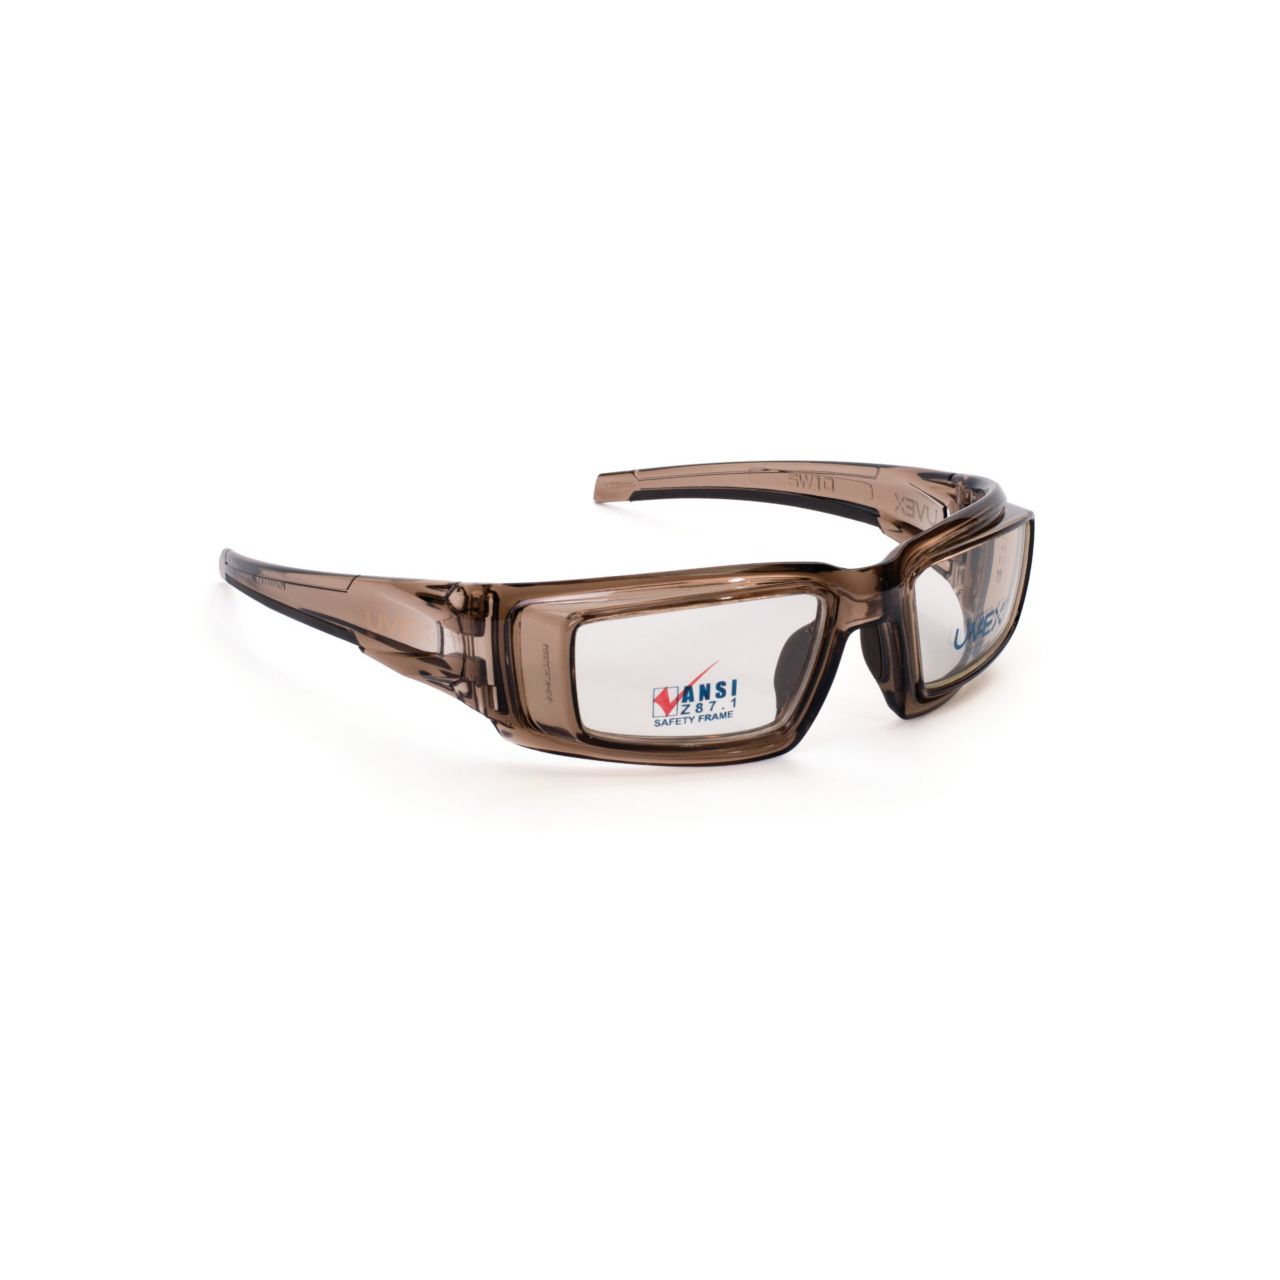 UX_swrx-collection-titmus-sw10_uvex rx sw10 brown frame 6 base